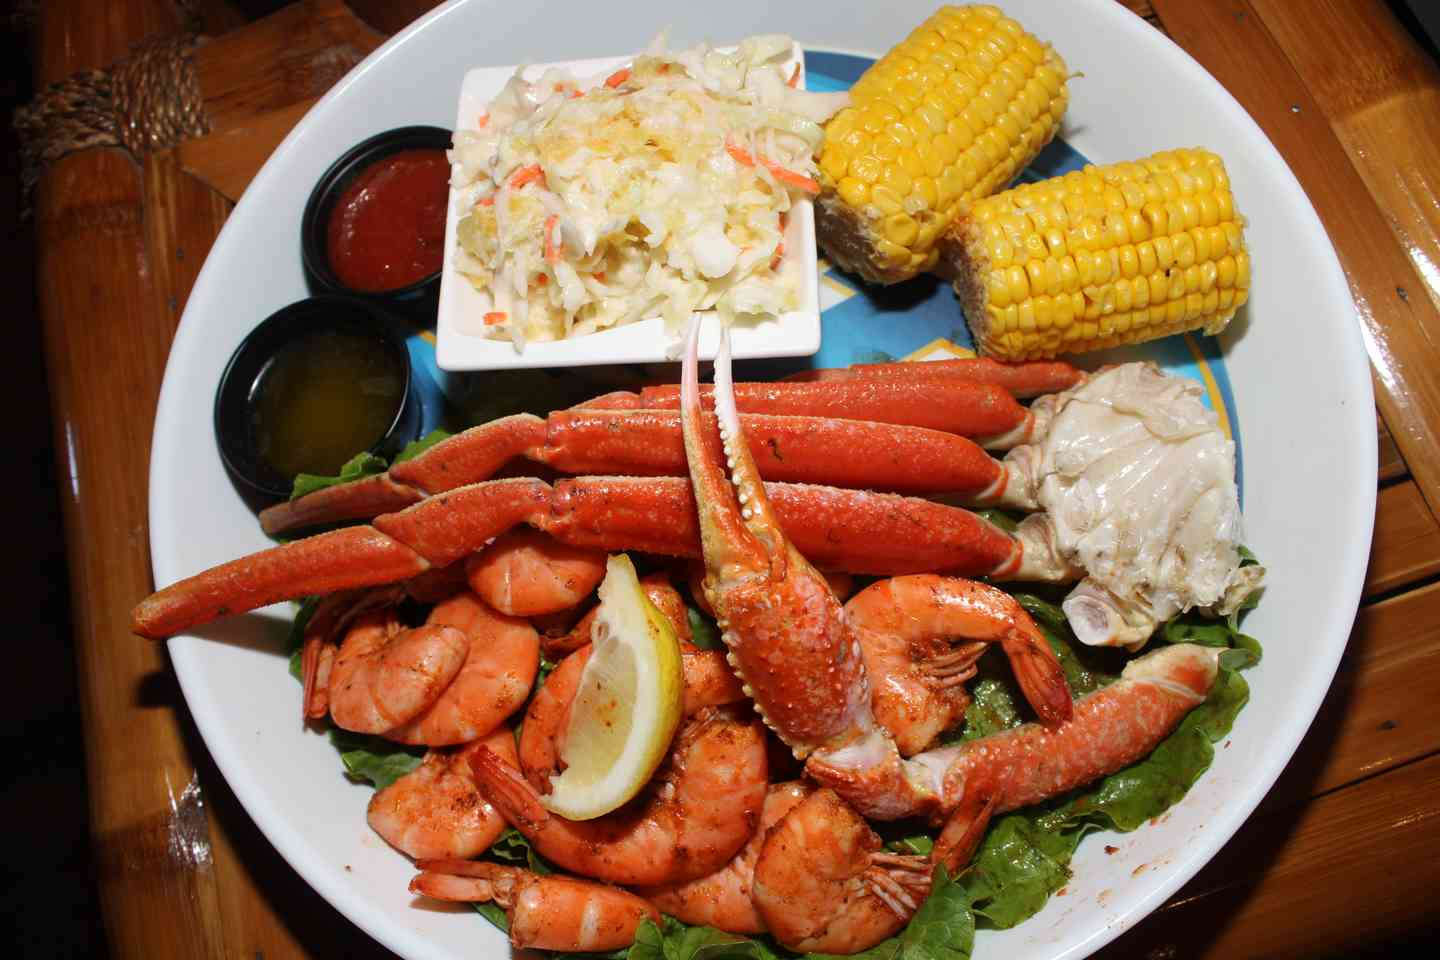 Snow Crab Legs and Peel N Eat Shrimp Combination